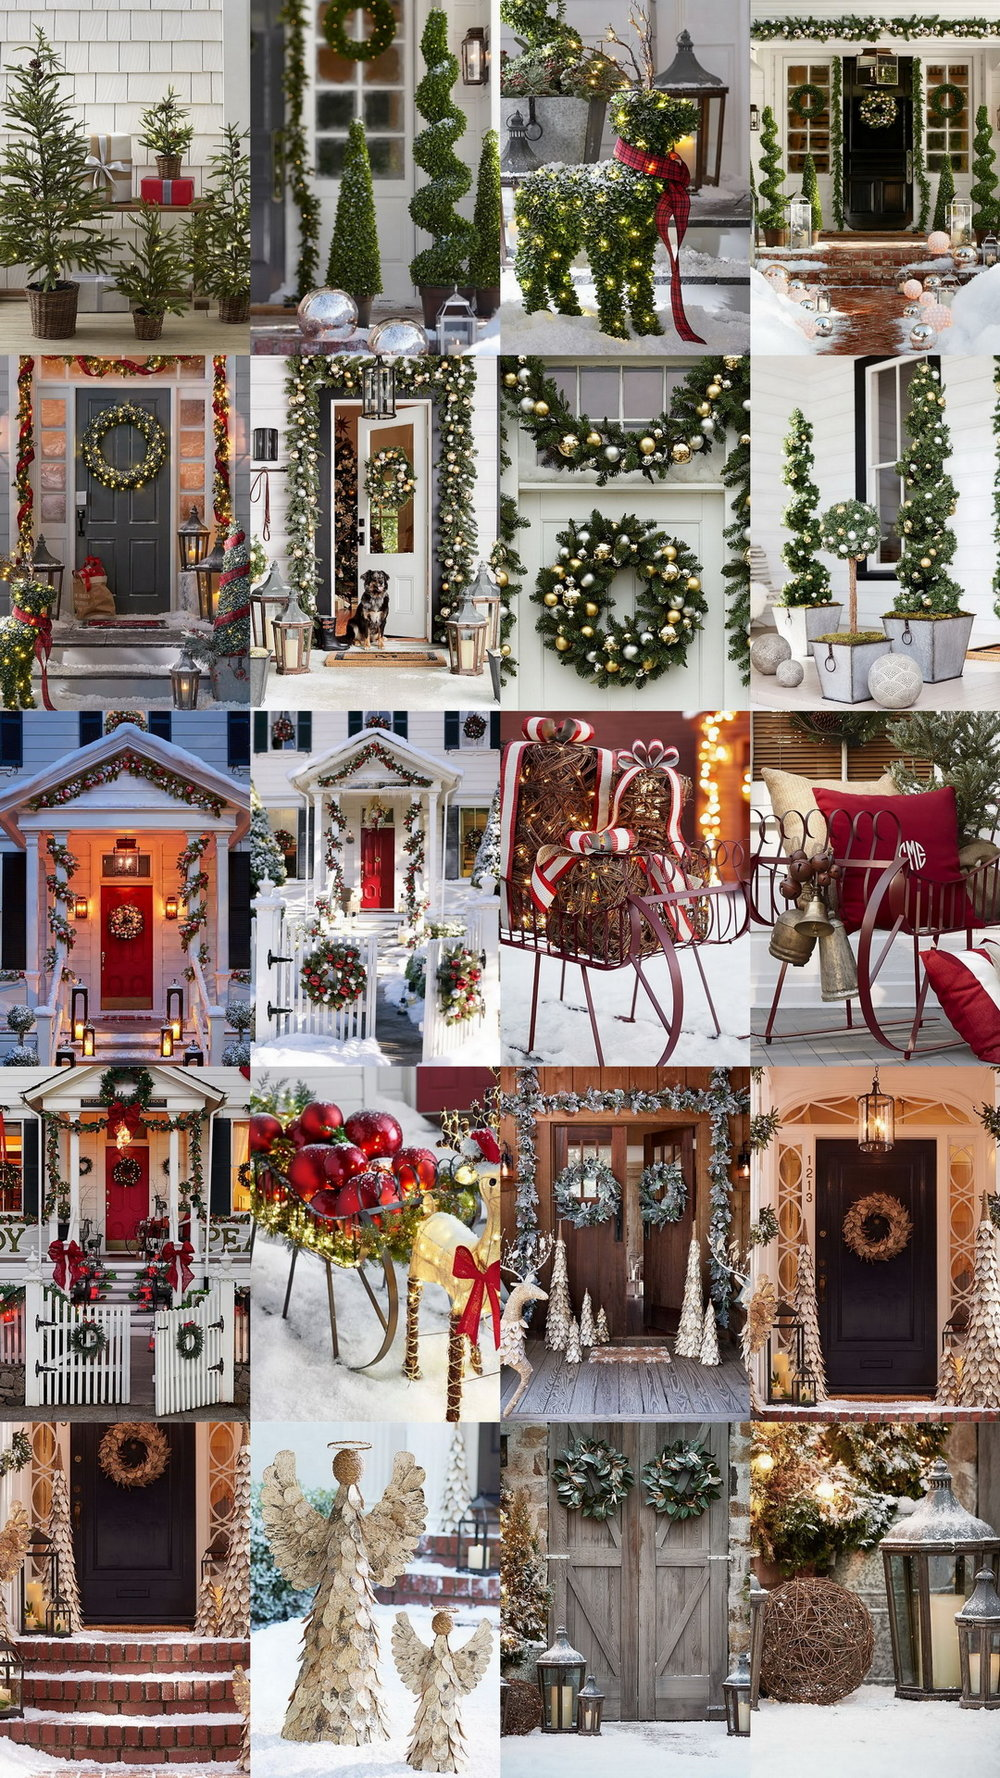 20 Exceptional Outdoor Christmas Decorations @PotteryBarn